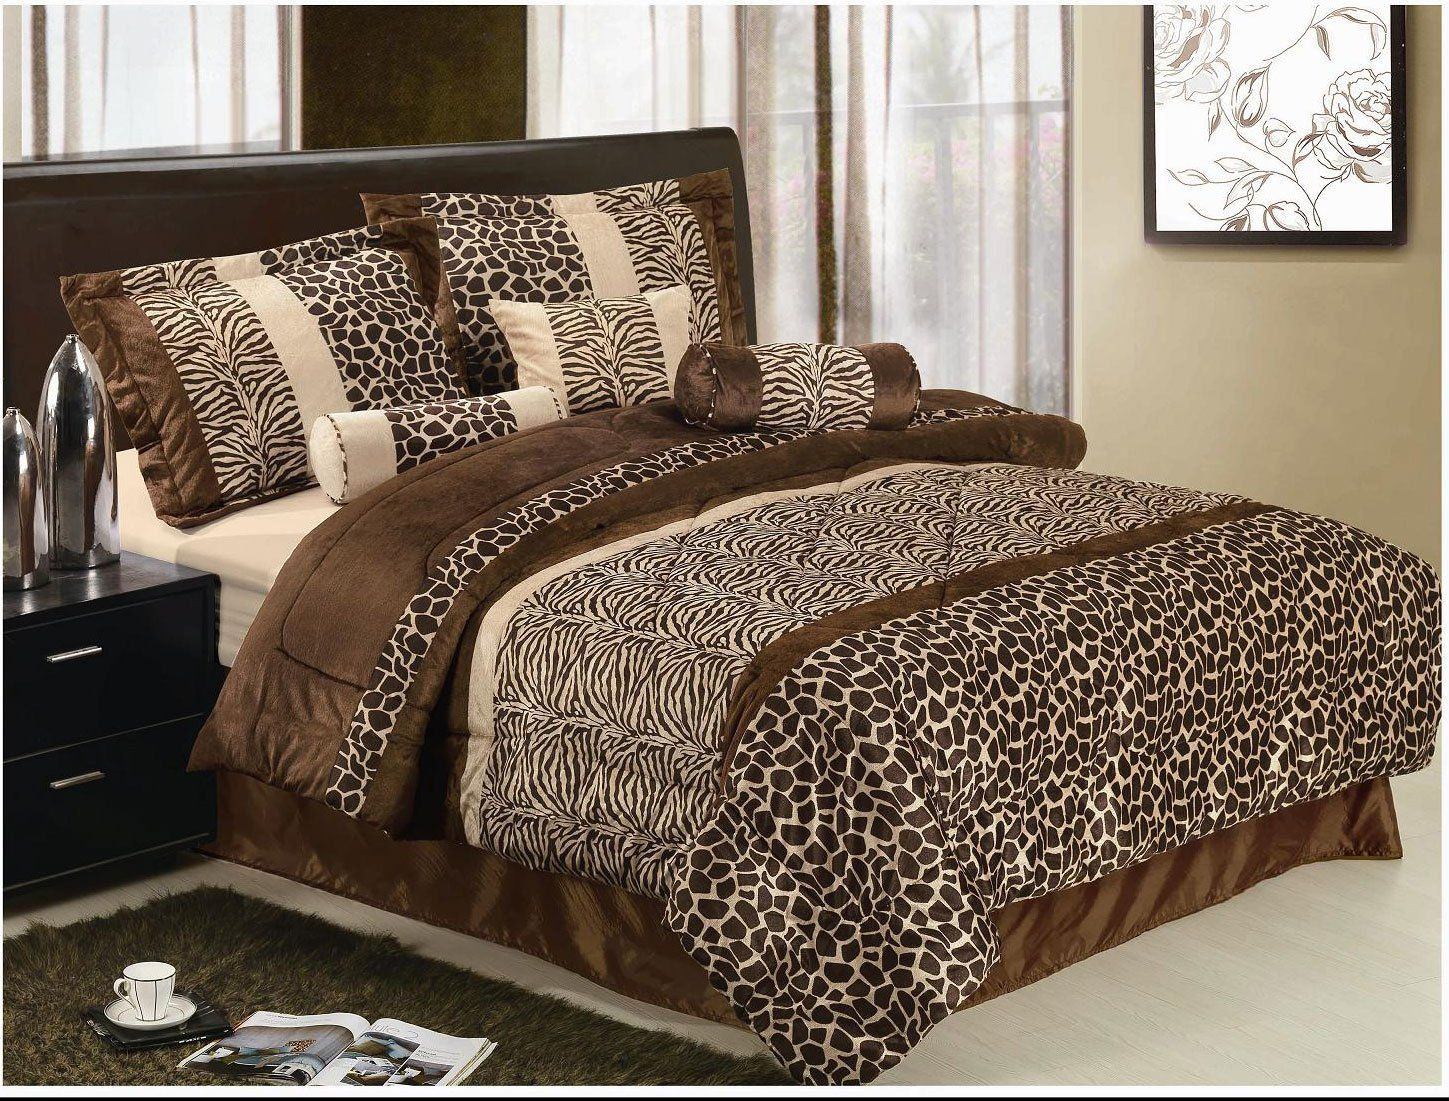 decor pinterest home design furniture bedroom ideas and cheetahs